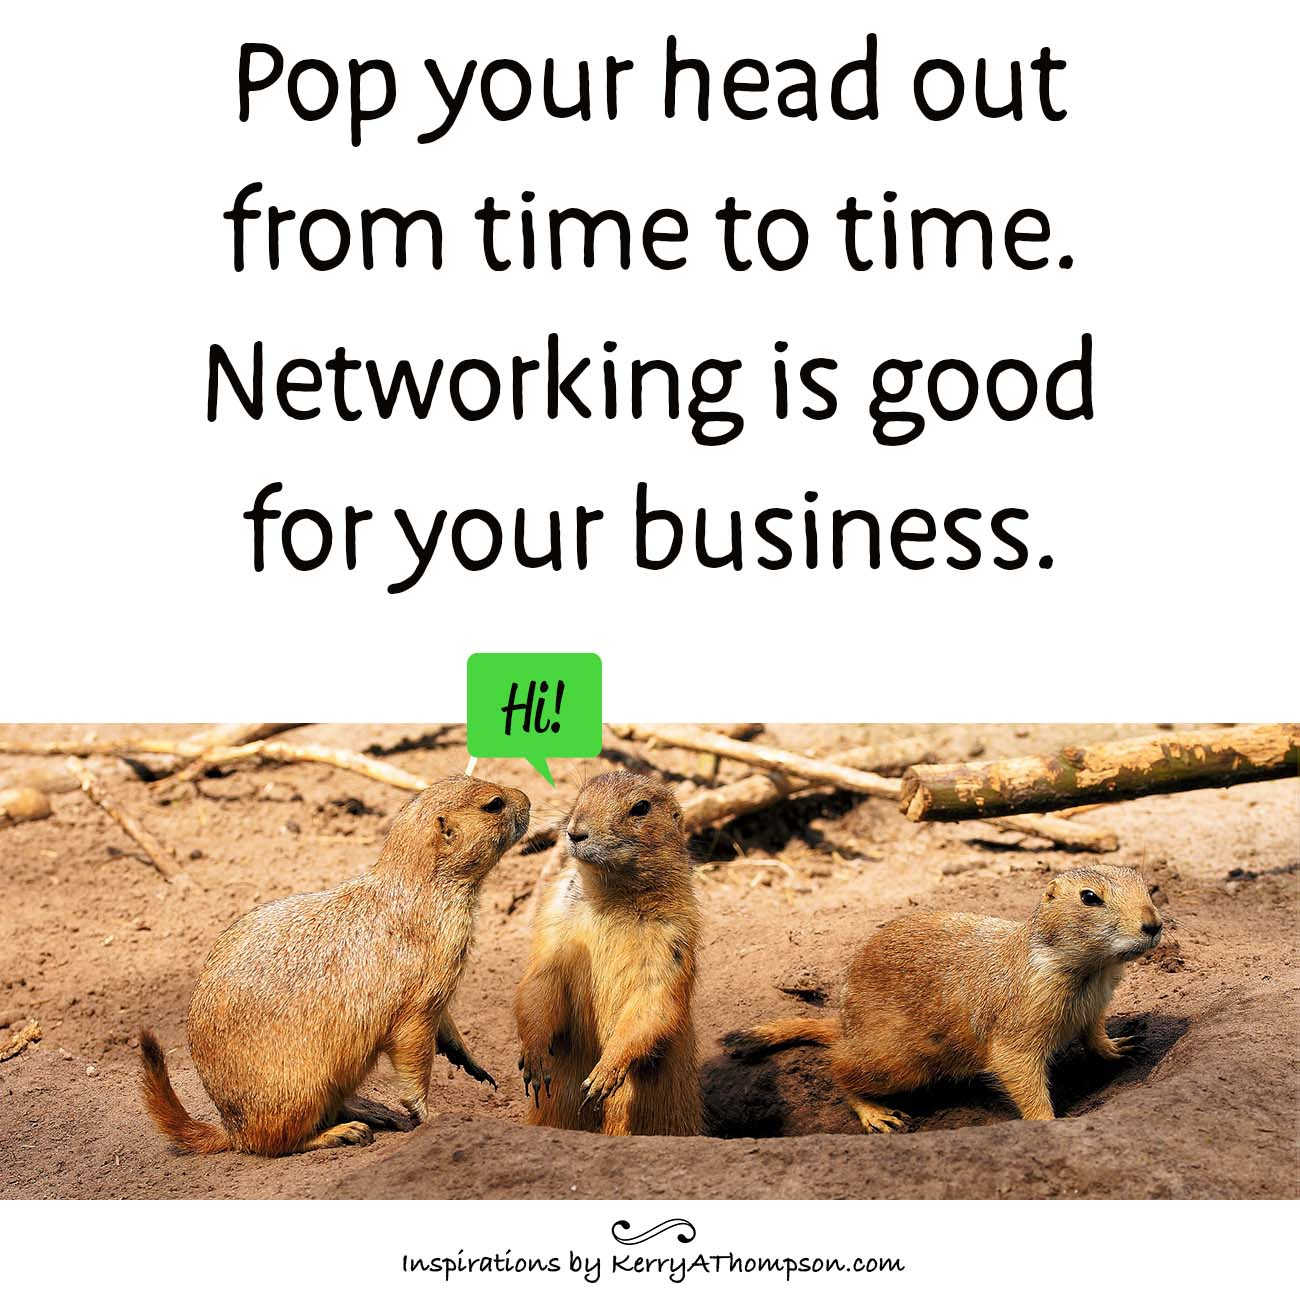 KerryAThompson.com Blog: Networking is good for your business.